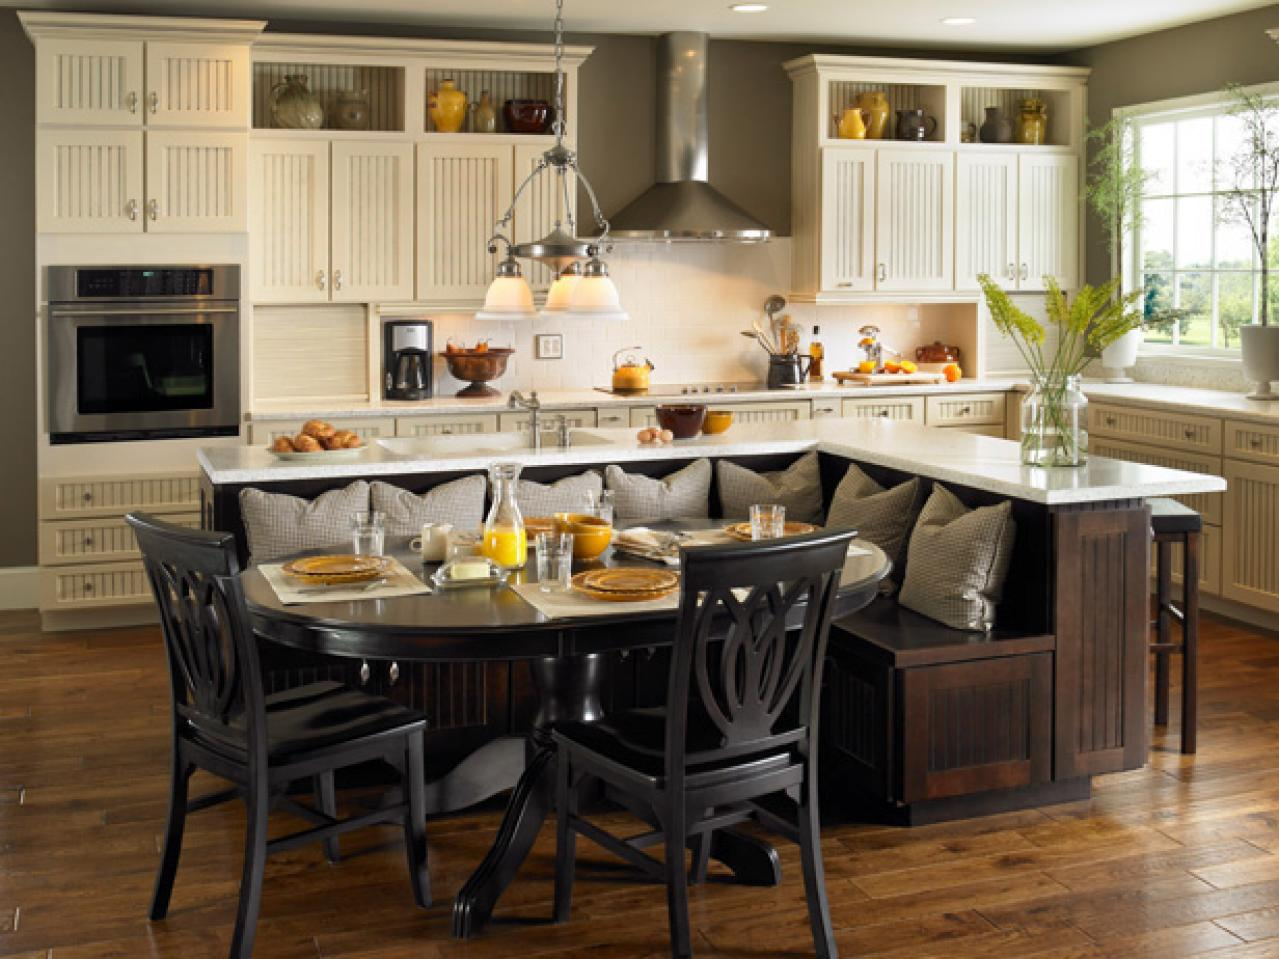 Kitchen island table ideas and options hgtv pictures hgtv - Ideas for kitchen islands ...